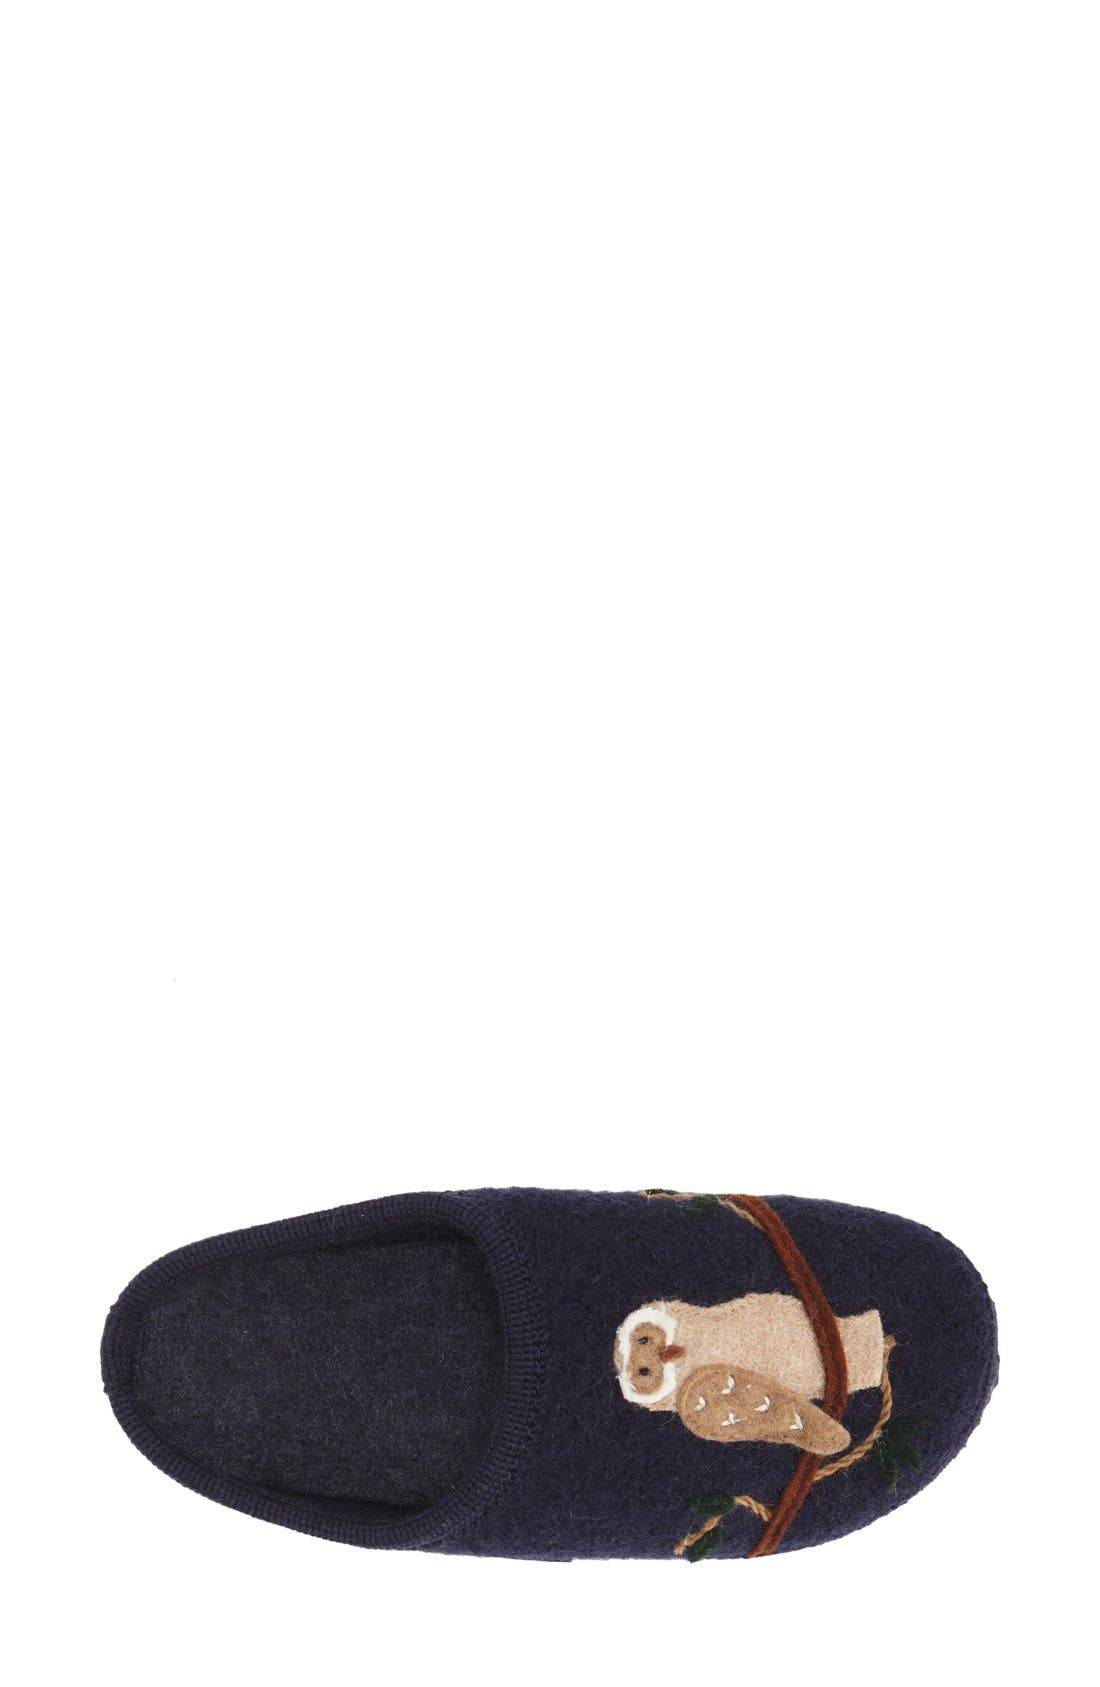 'Mado' Wool Slipper,                             Alternate thumbnail 3, color,                             Navy Wool